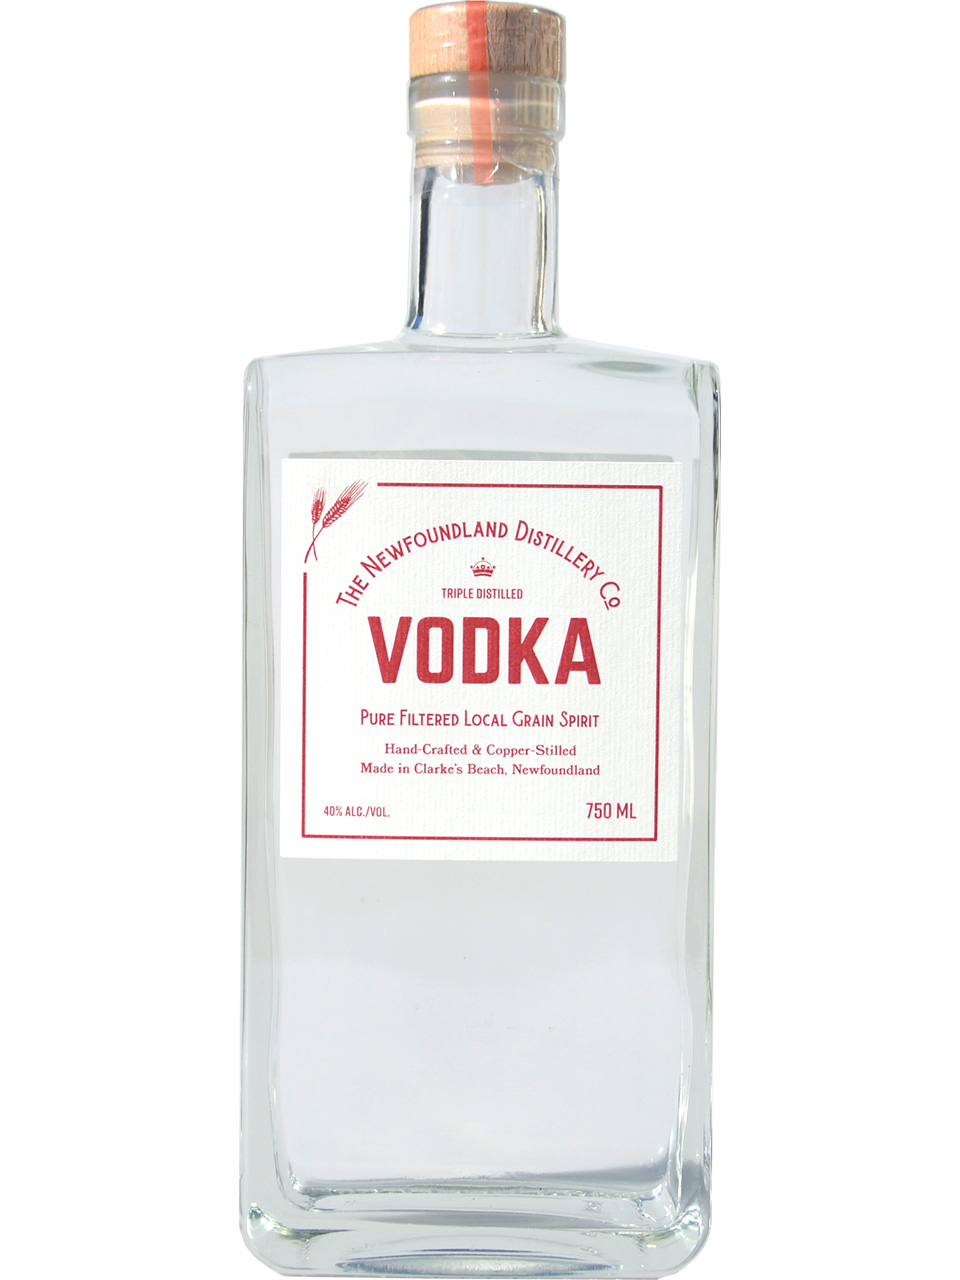 The Newfoundland Distillery Co. Vodka